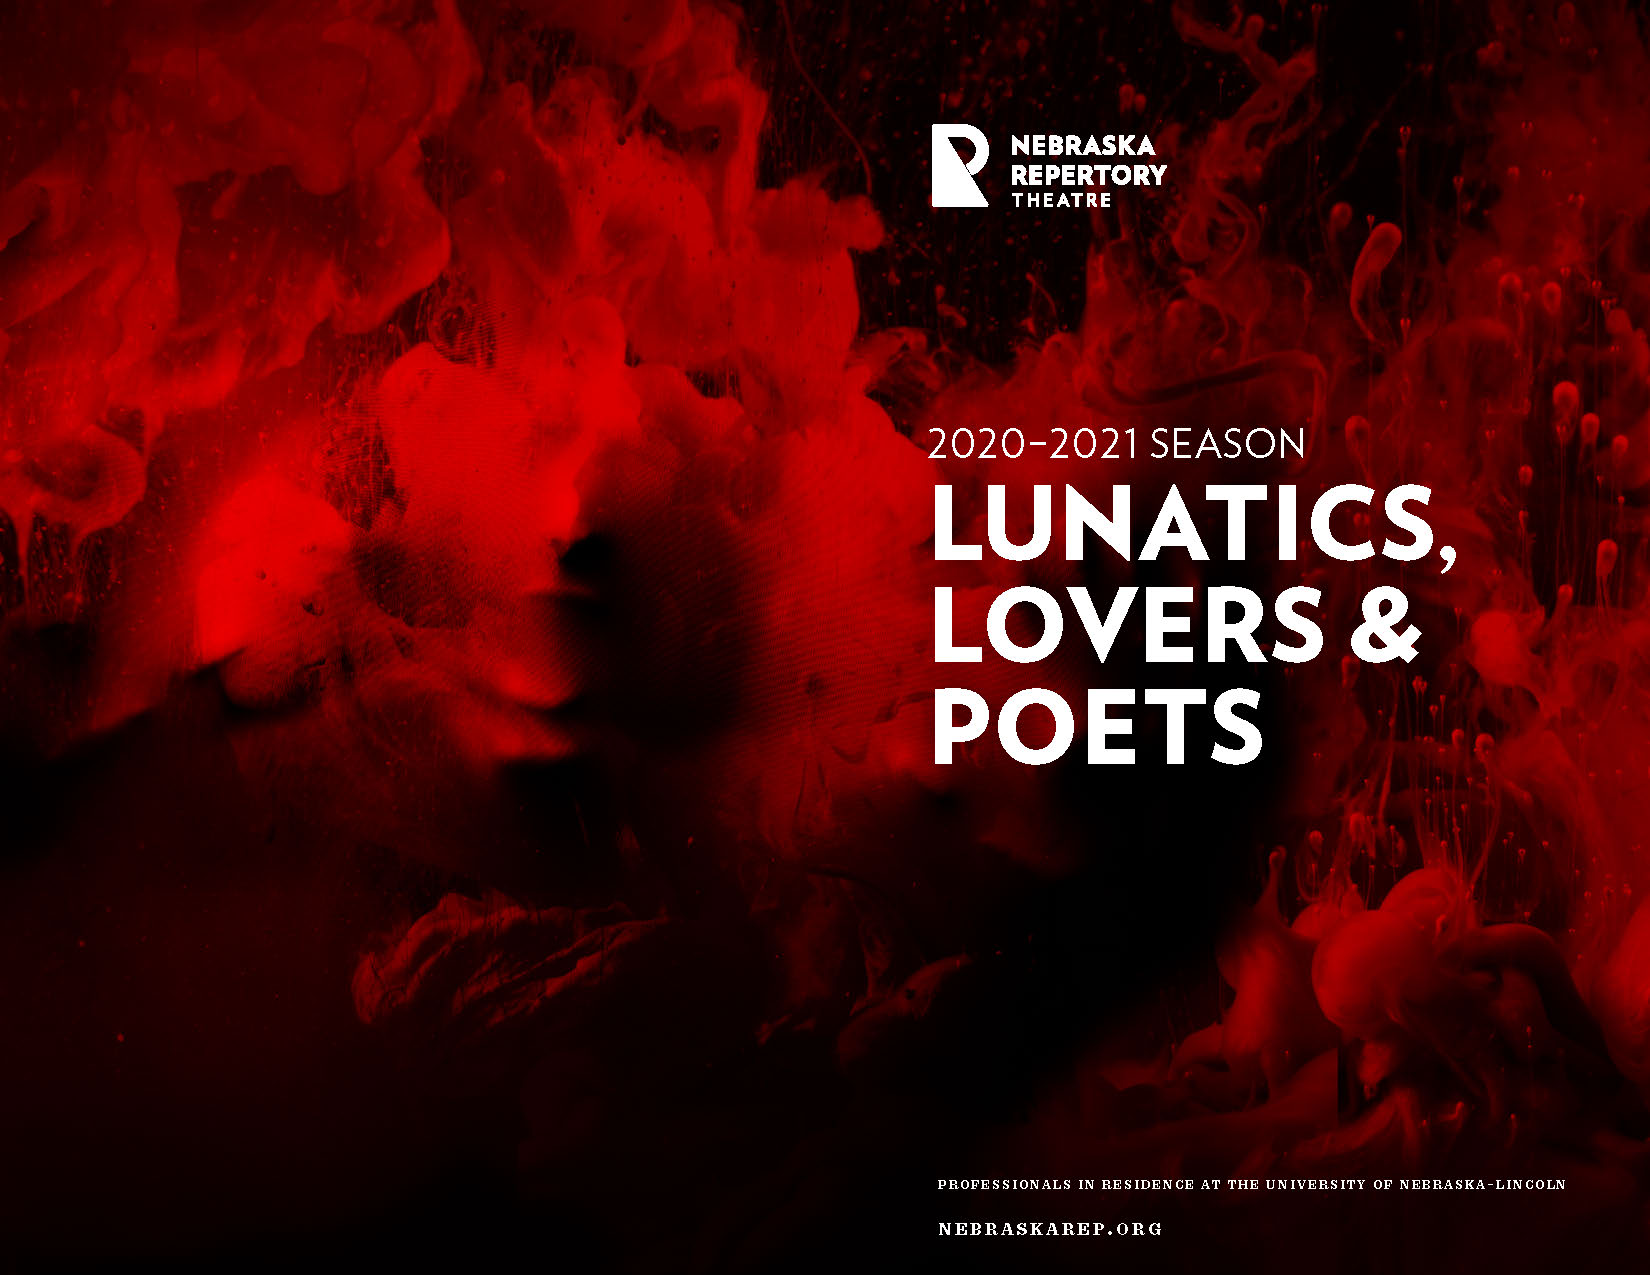 The cover of a program, featuring the title '2020–2021 Season: Lunatics, Lover & Poets' over a dramatic black background where curling red smoke forms creepy faces.